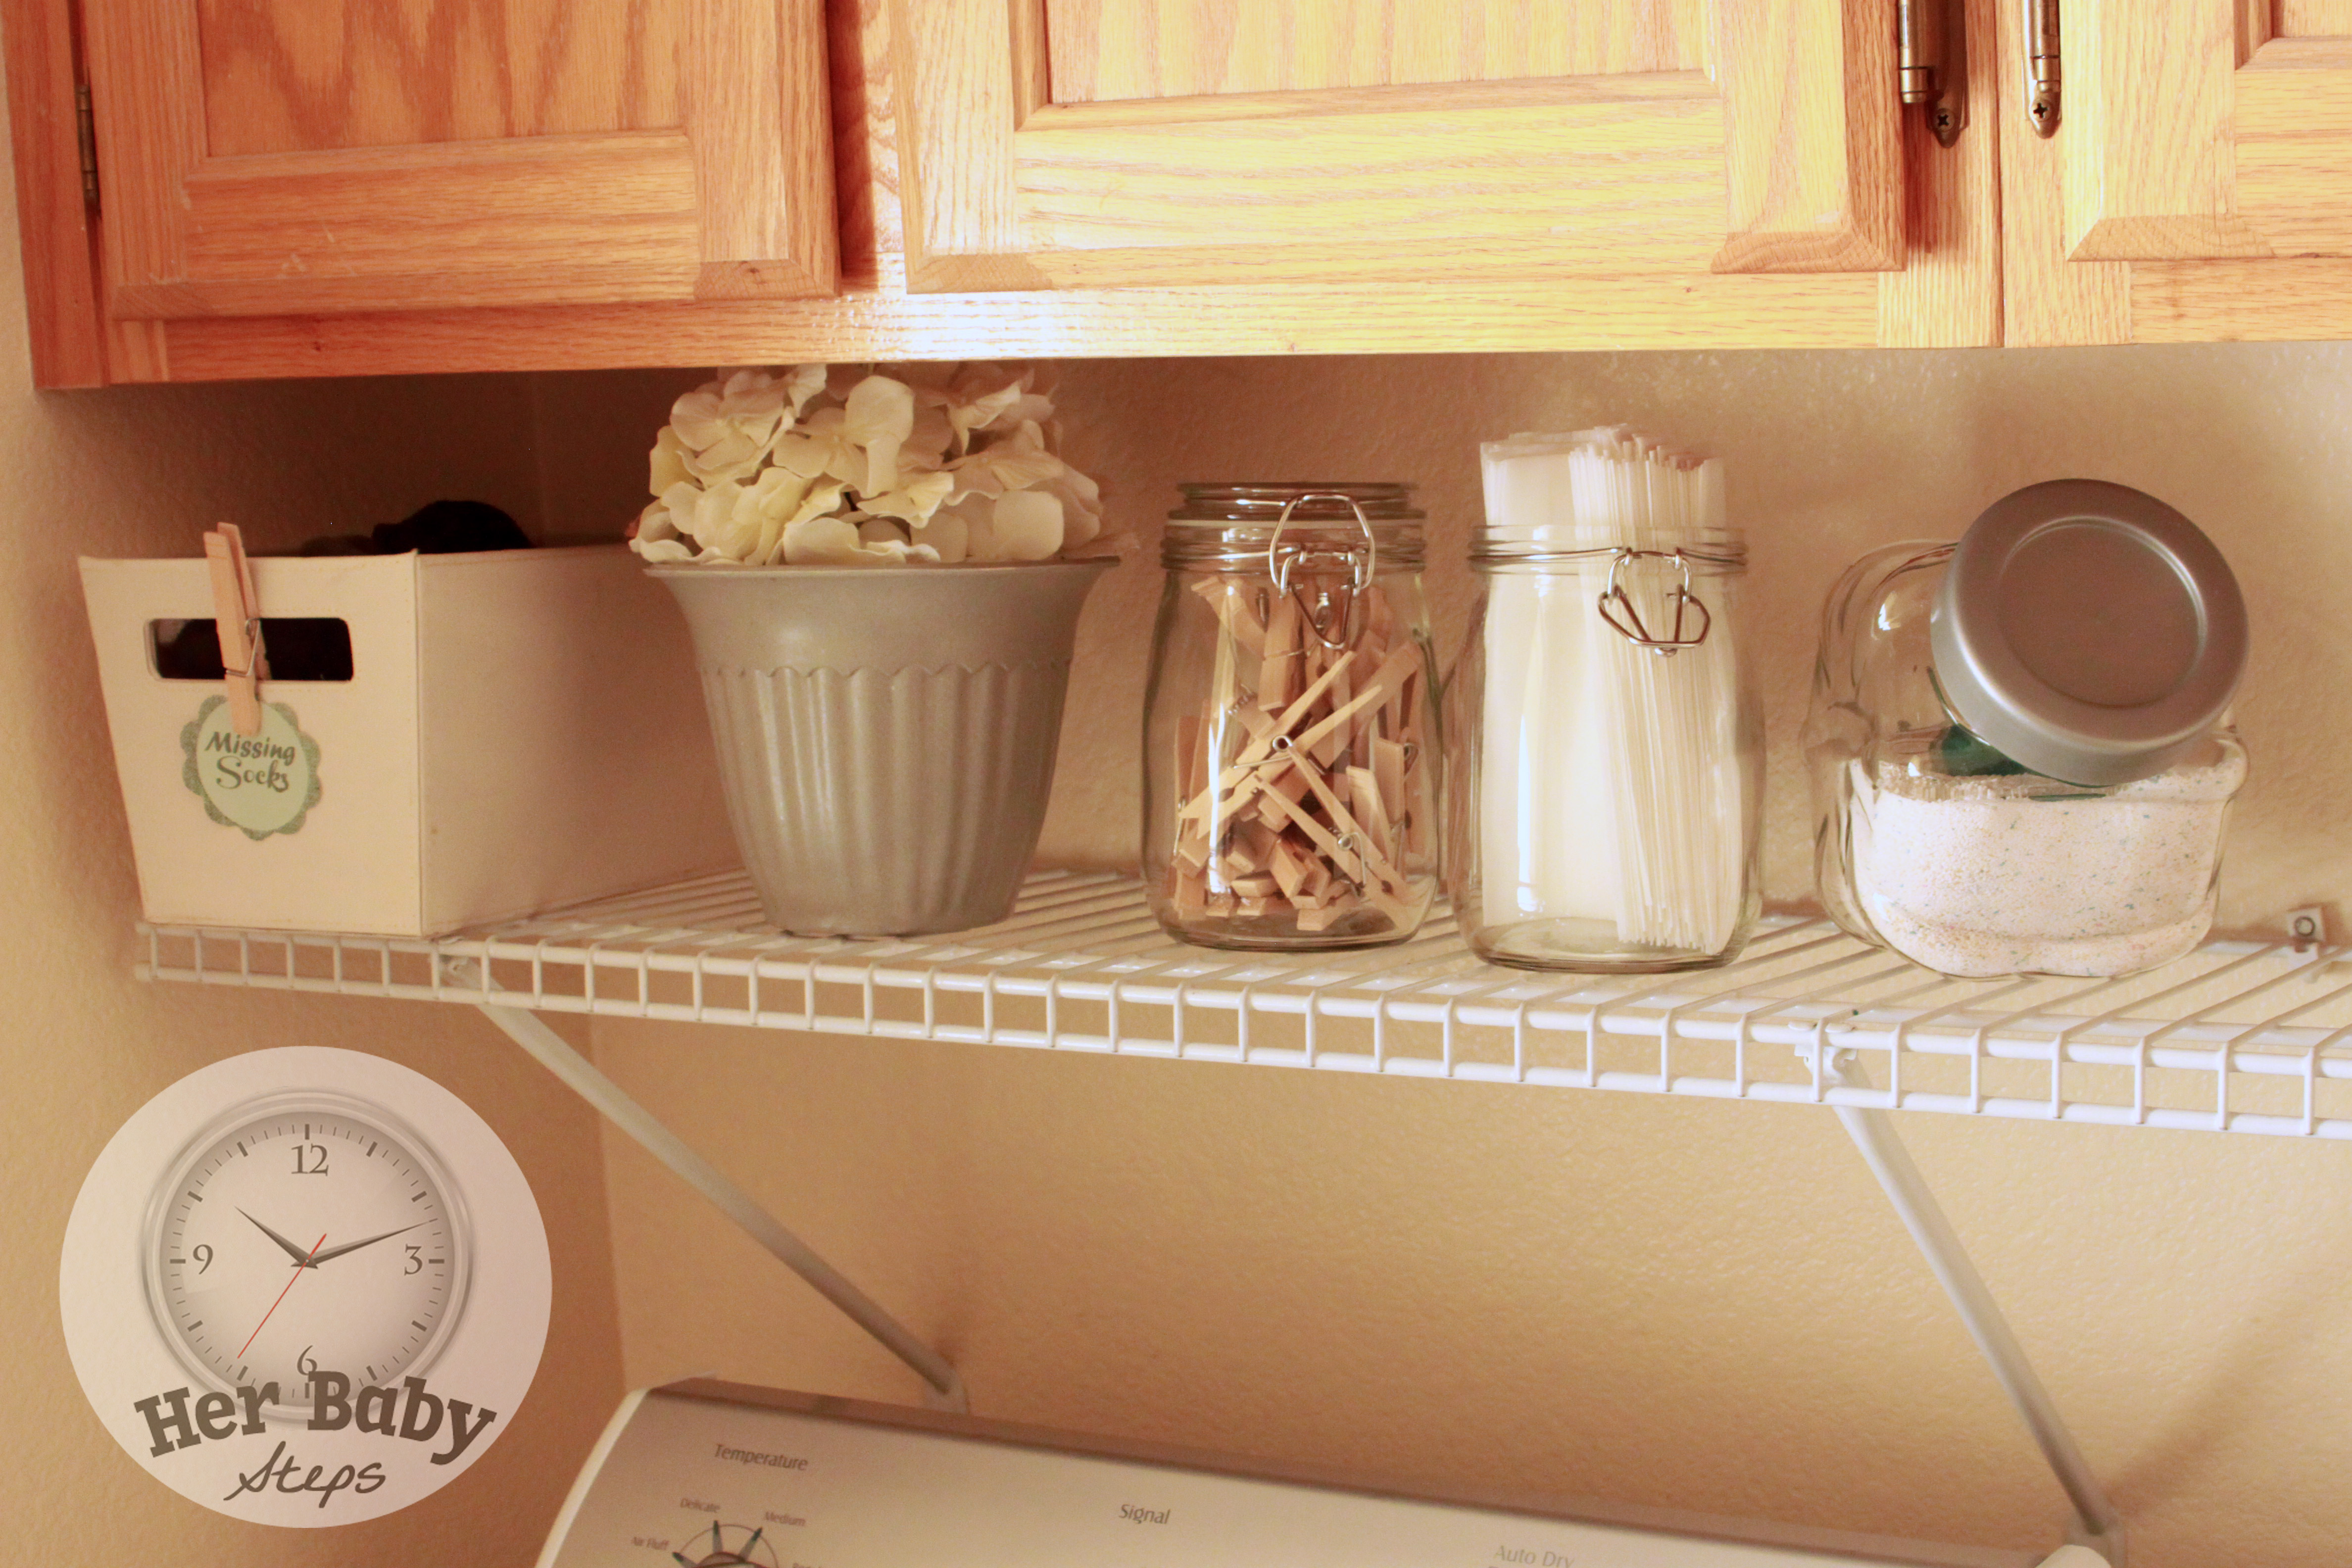 Laundry Room Makeover Her Baby Steps